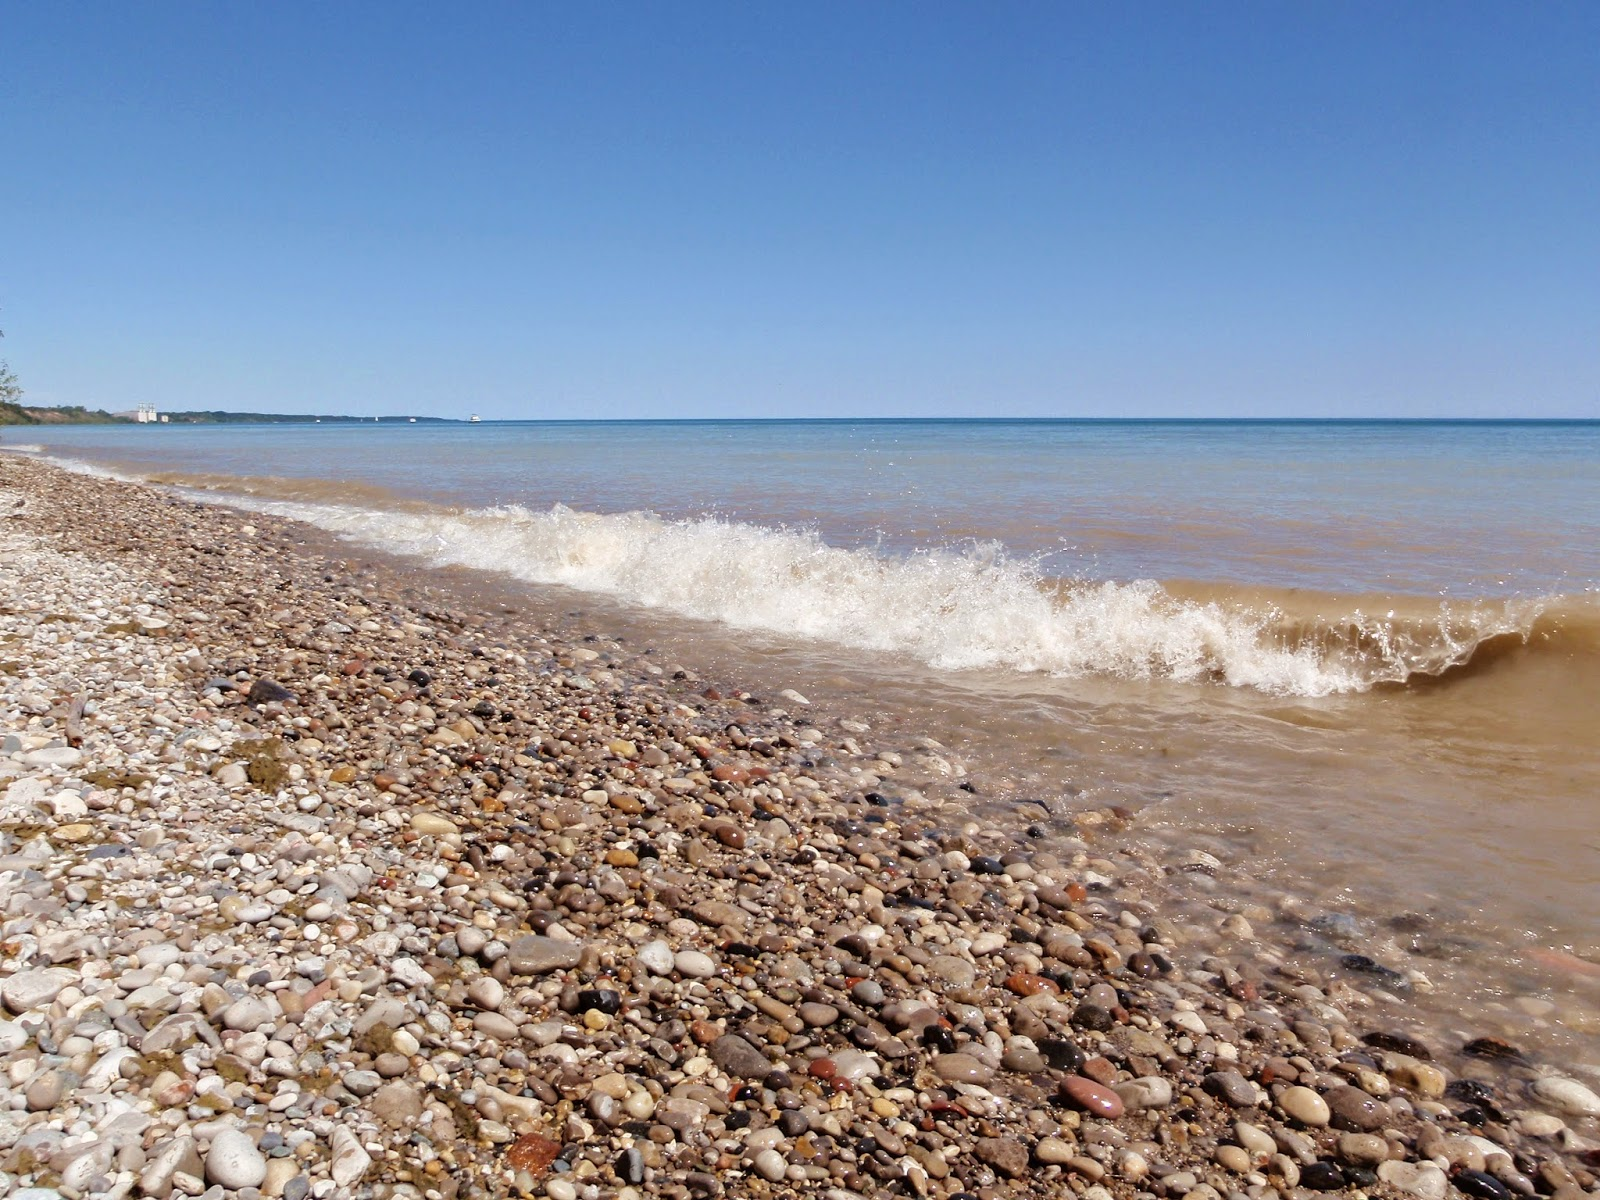 Waves crashing along the Lake Michigan shoreline at Lion's Den Gorge Nature Preserve